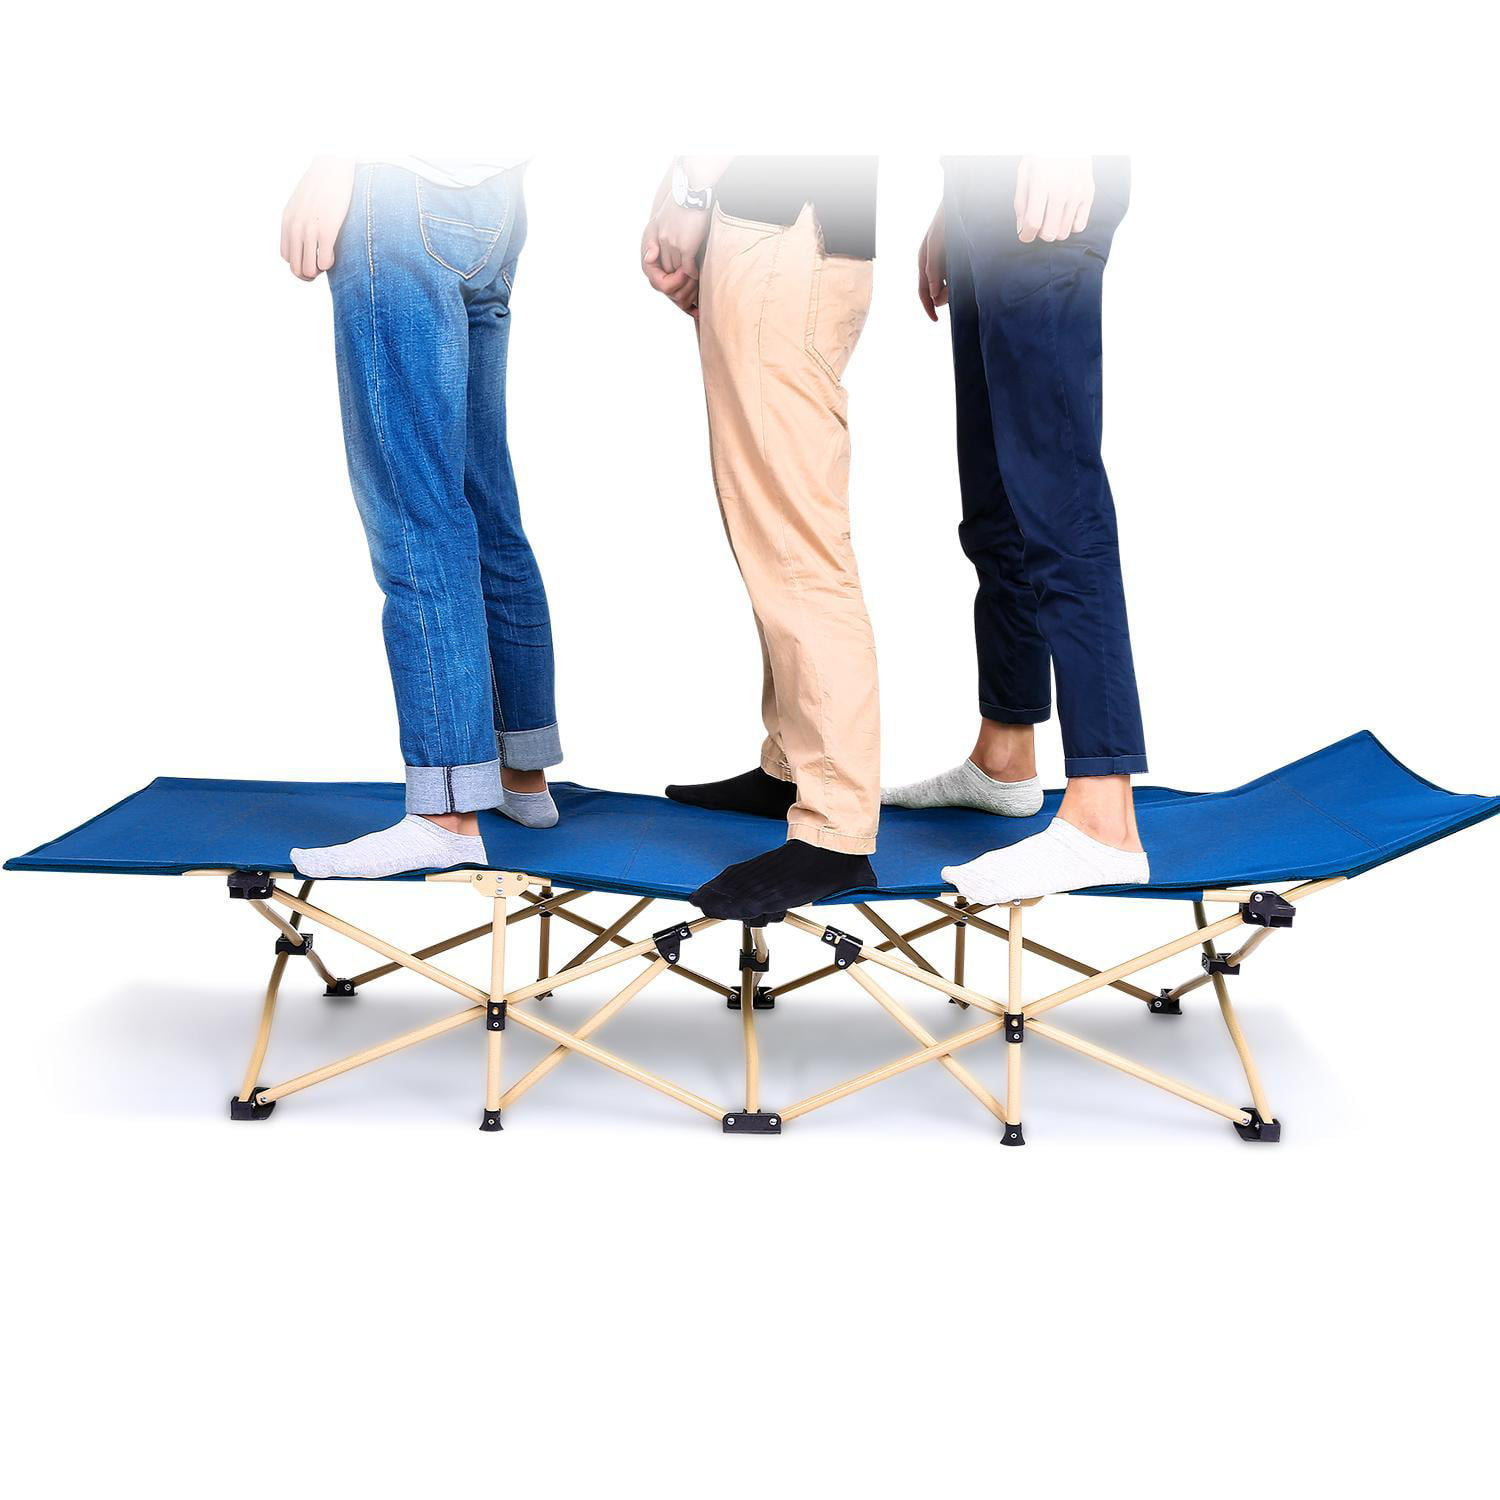 Portable Bed 260lbs Capacity Camping Cot Foldable for ...